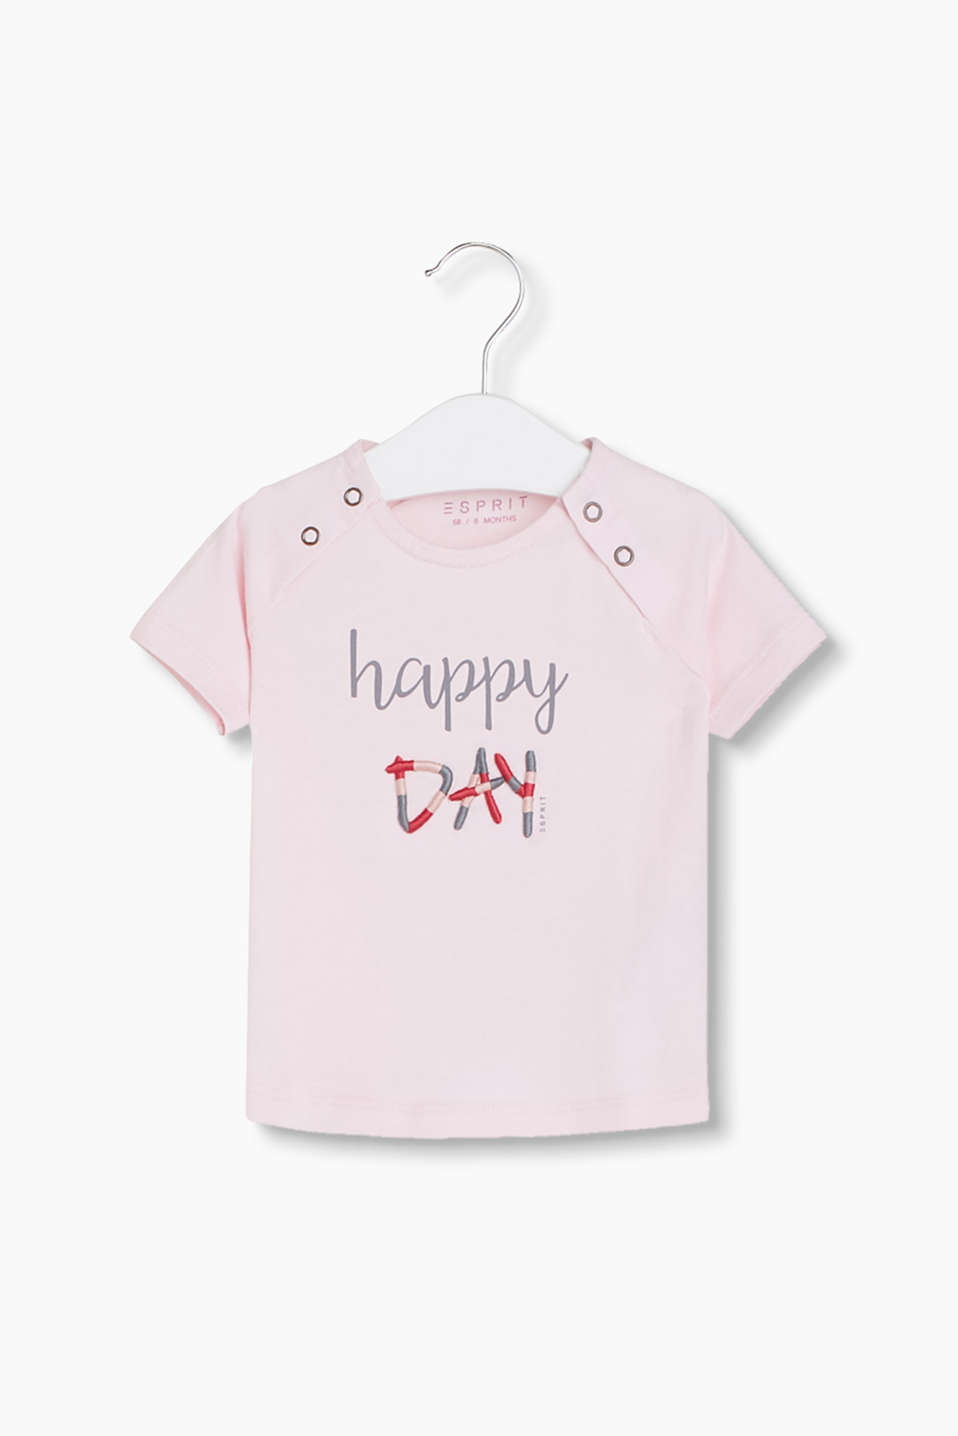 Oh happy day - T-Shirt mit hübschen Statement-Artwork